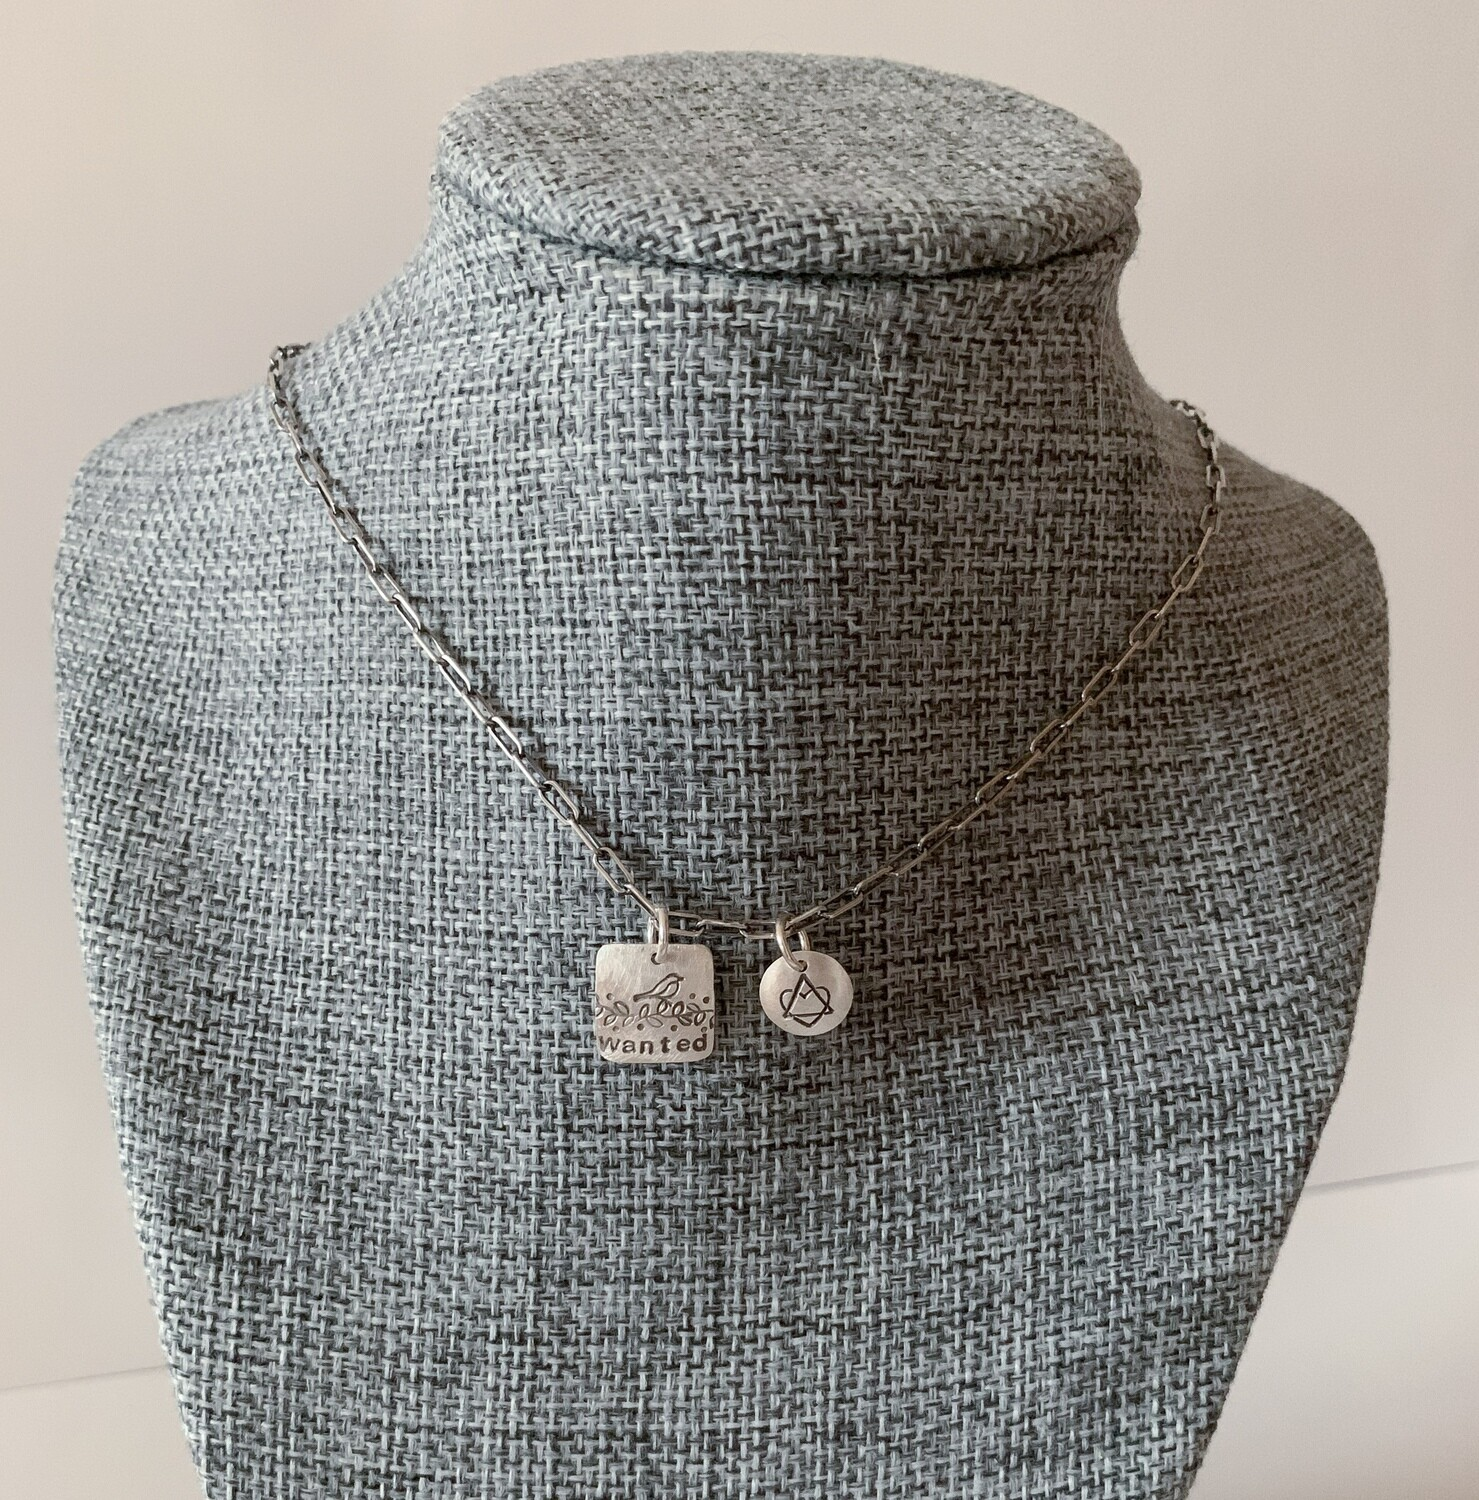 Adoption Means Wanted Necklace (Chain length 18 inches)